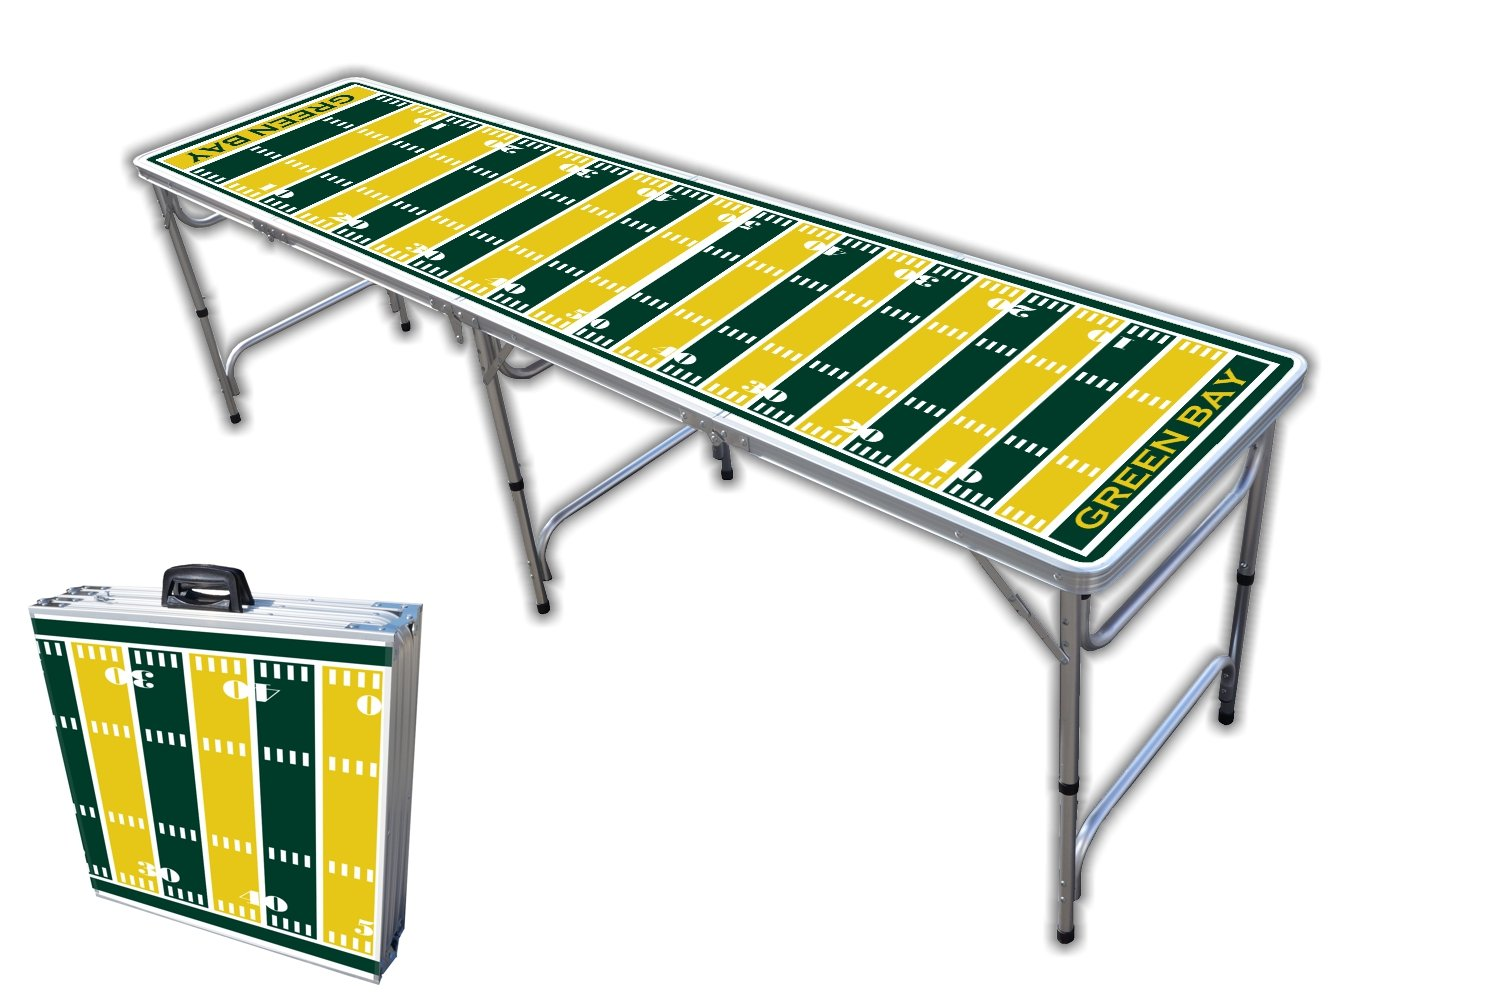 8-Foot Professional Beer Pong Table - Green Bay Football Field Graphic by PartyPongTables.com